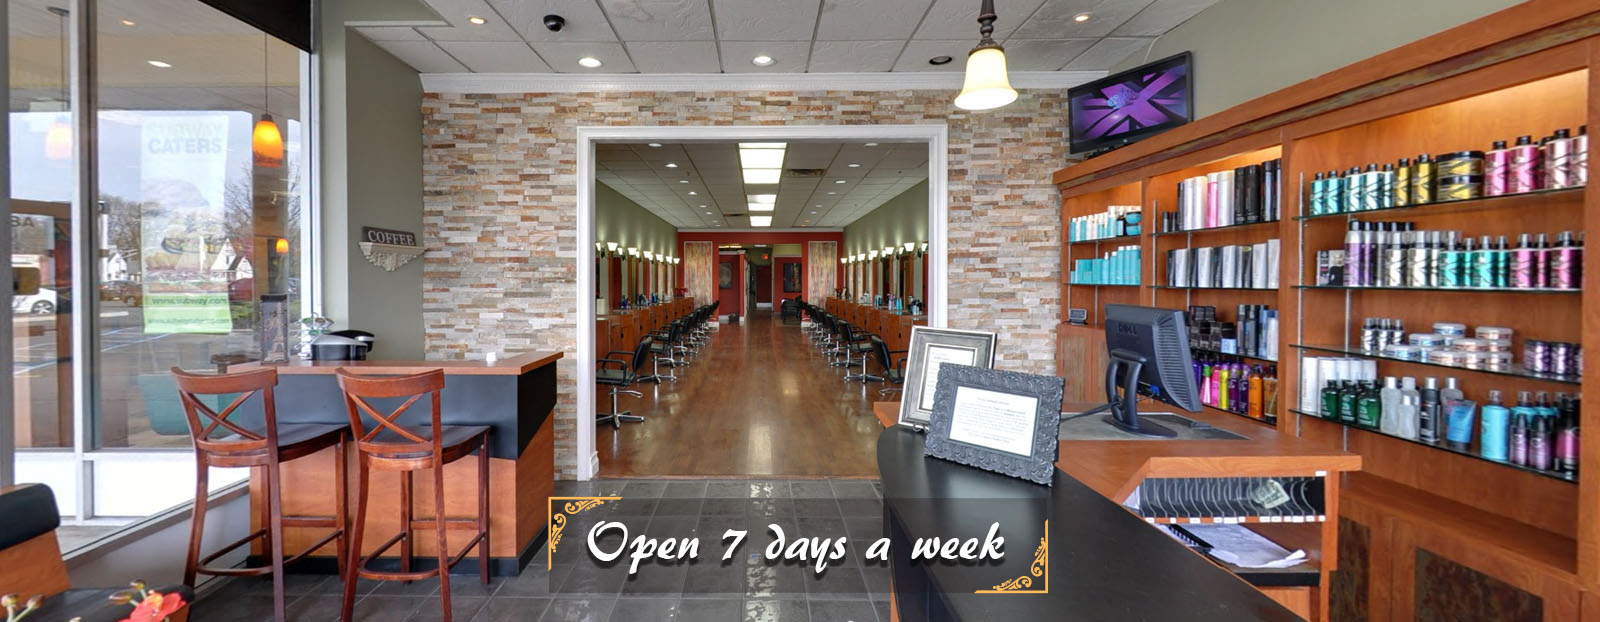 Salon Salon Dolce Vita Upscale Unisex Hair Salon In Edison Nj